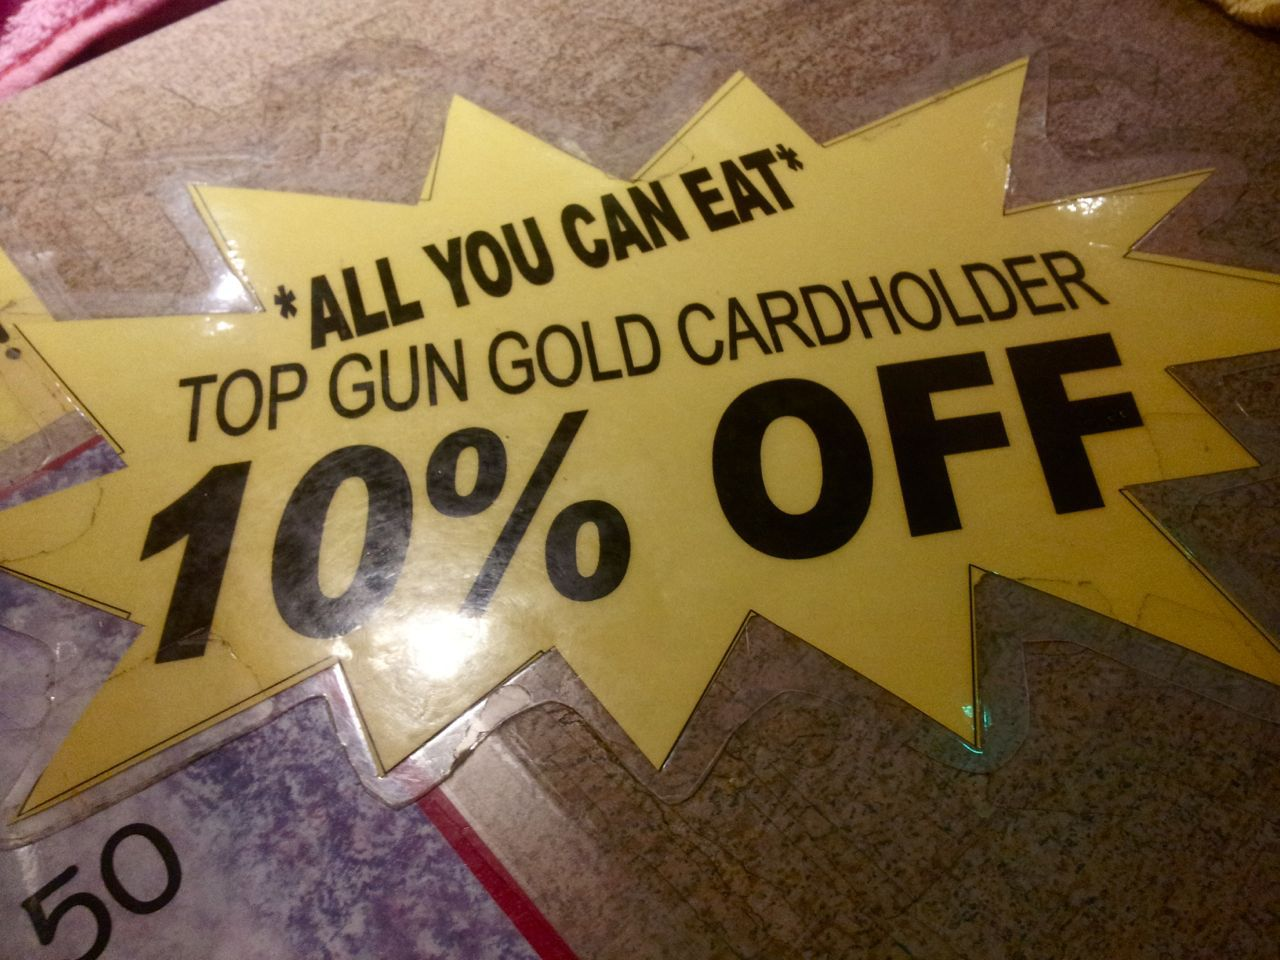 Top Gun discount card